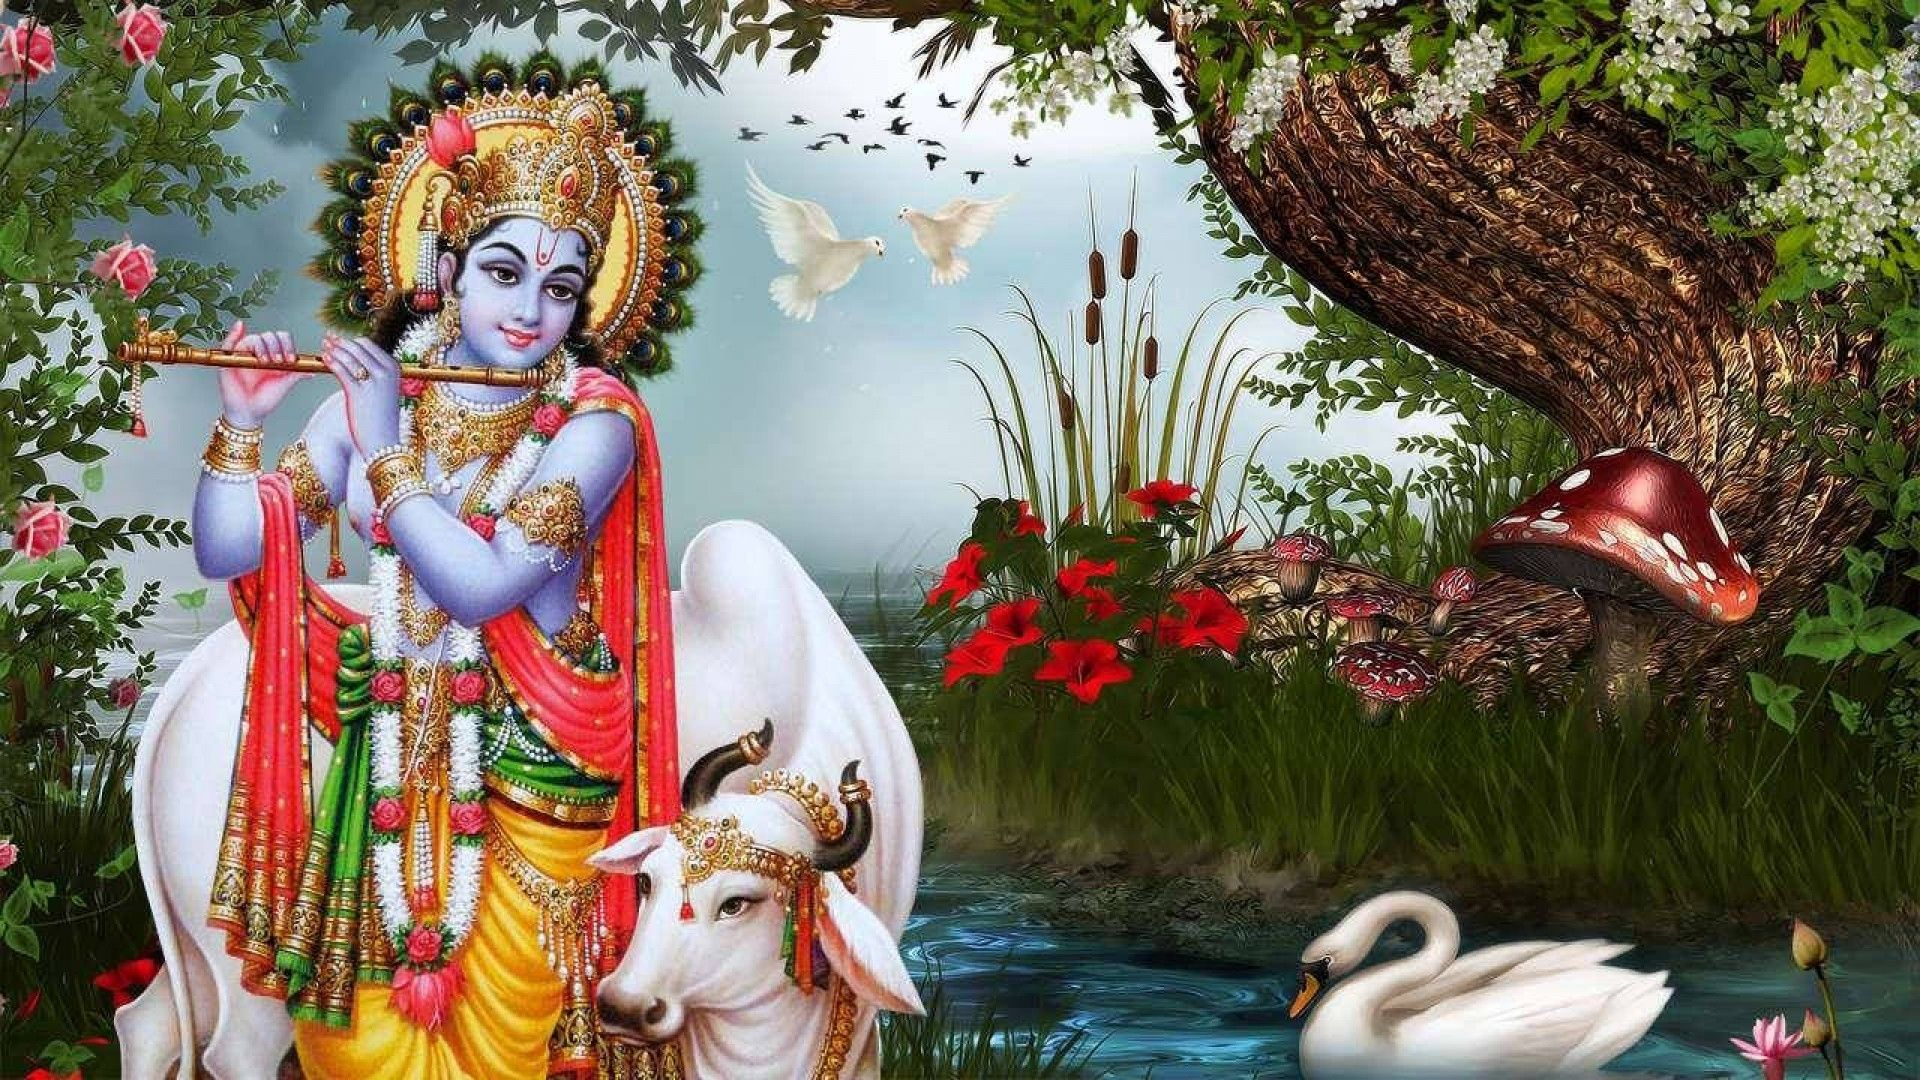 Hd wallpaper of lord krishna - Radha Krishna Pictures Krishna Wallpaper Lord Krishna Festivals Summary Wallpapers About You Html Hindus